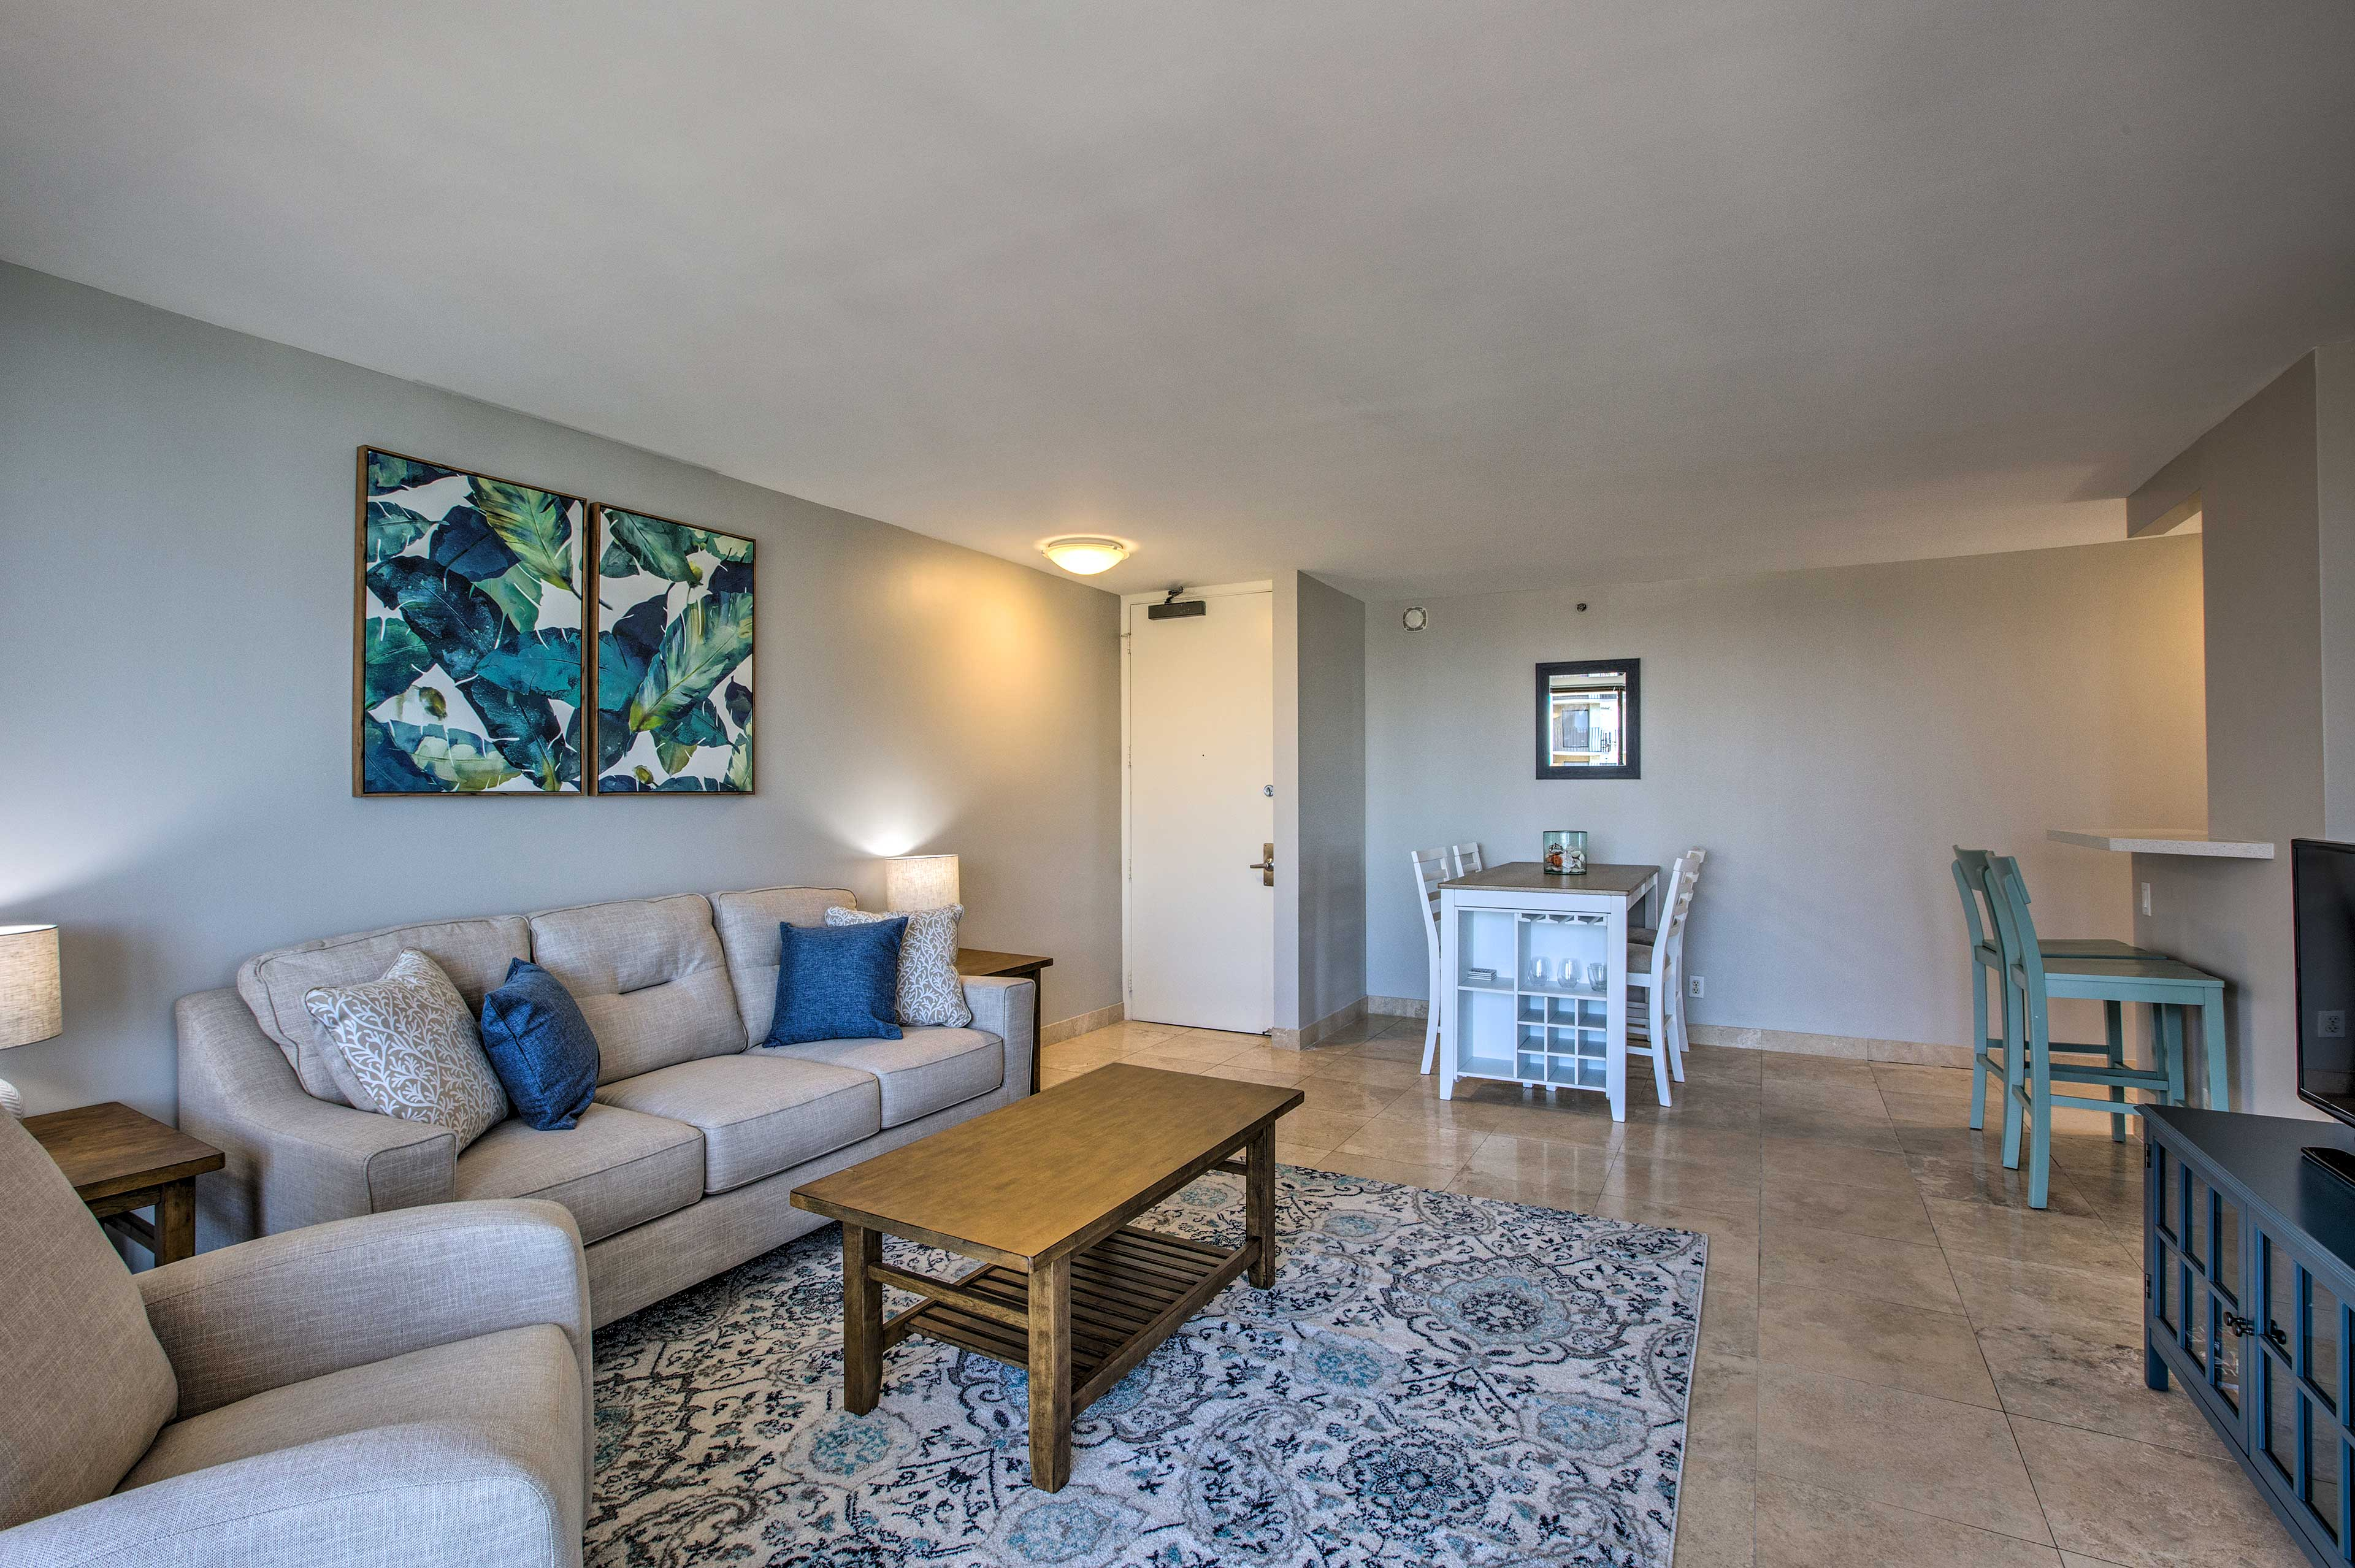 Make yourself at home in this bright and spcaious living area.